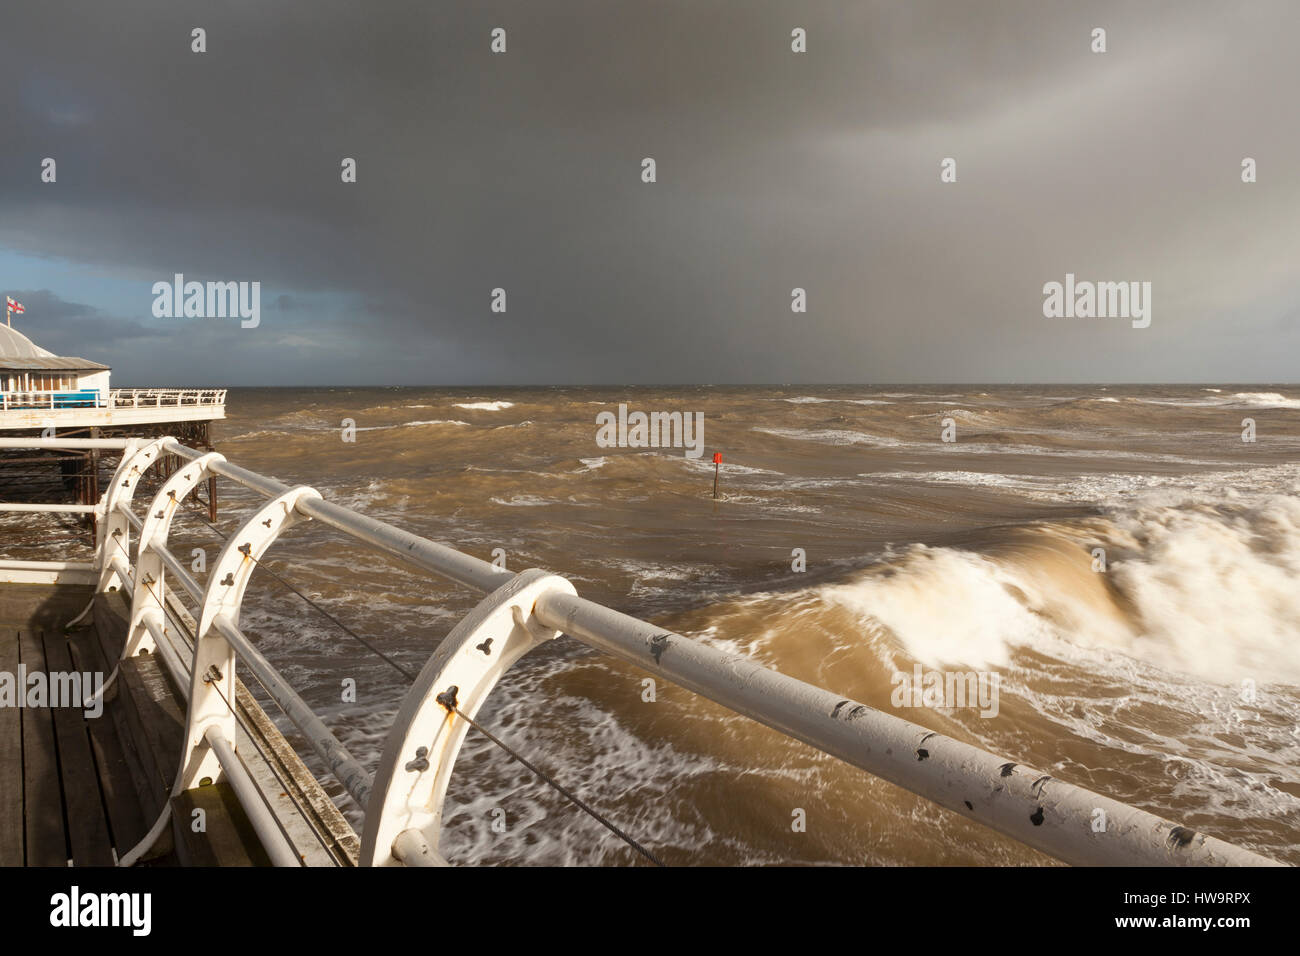 A high tide at Cromer Pier, Norfolk, UK Stock Photo